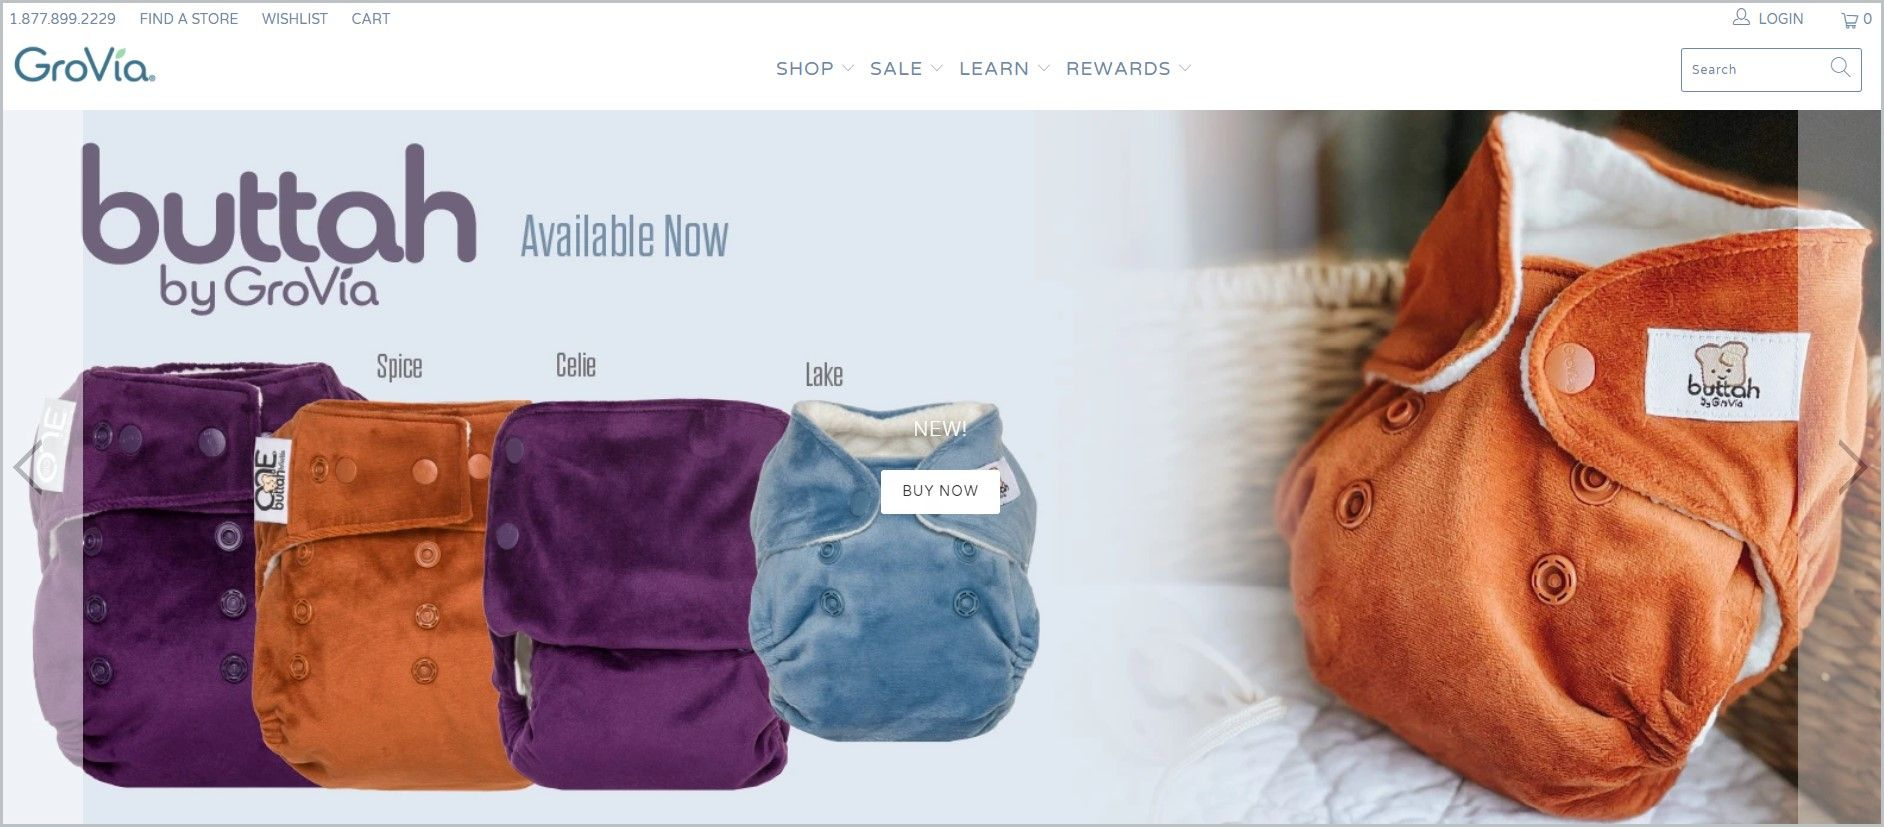 screenshot of GroVia homepage, with white header with the website's name and the main menu, with different colorful diapers as the featured image